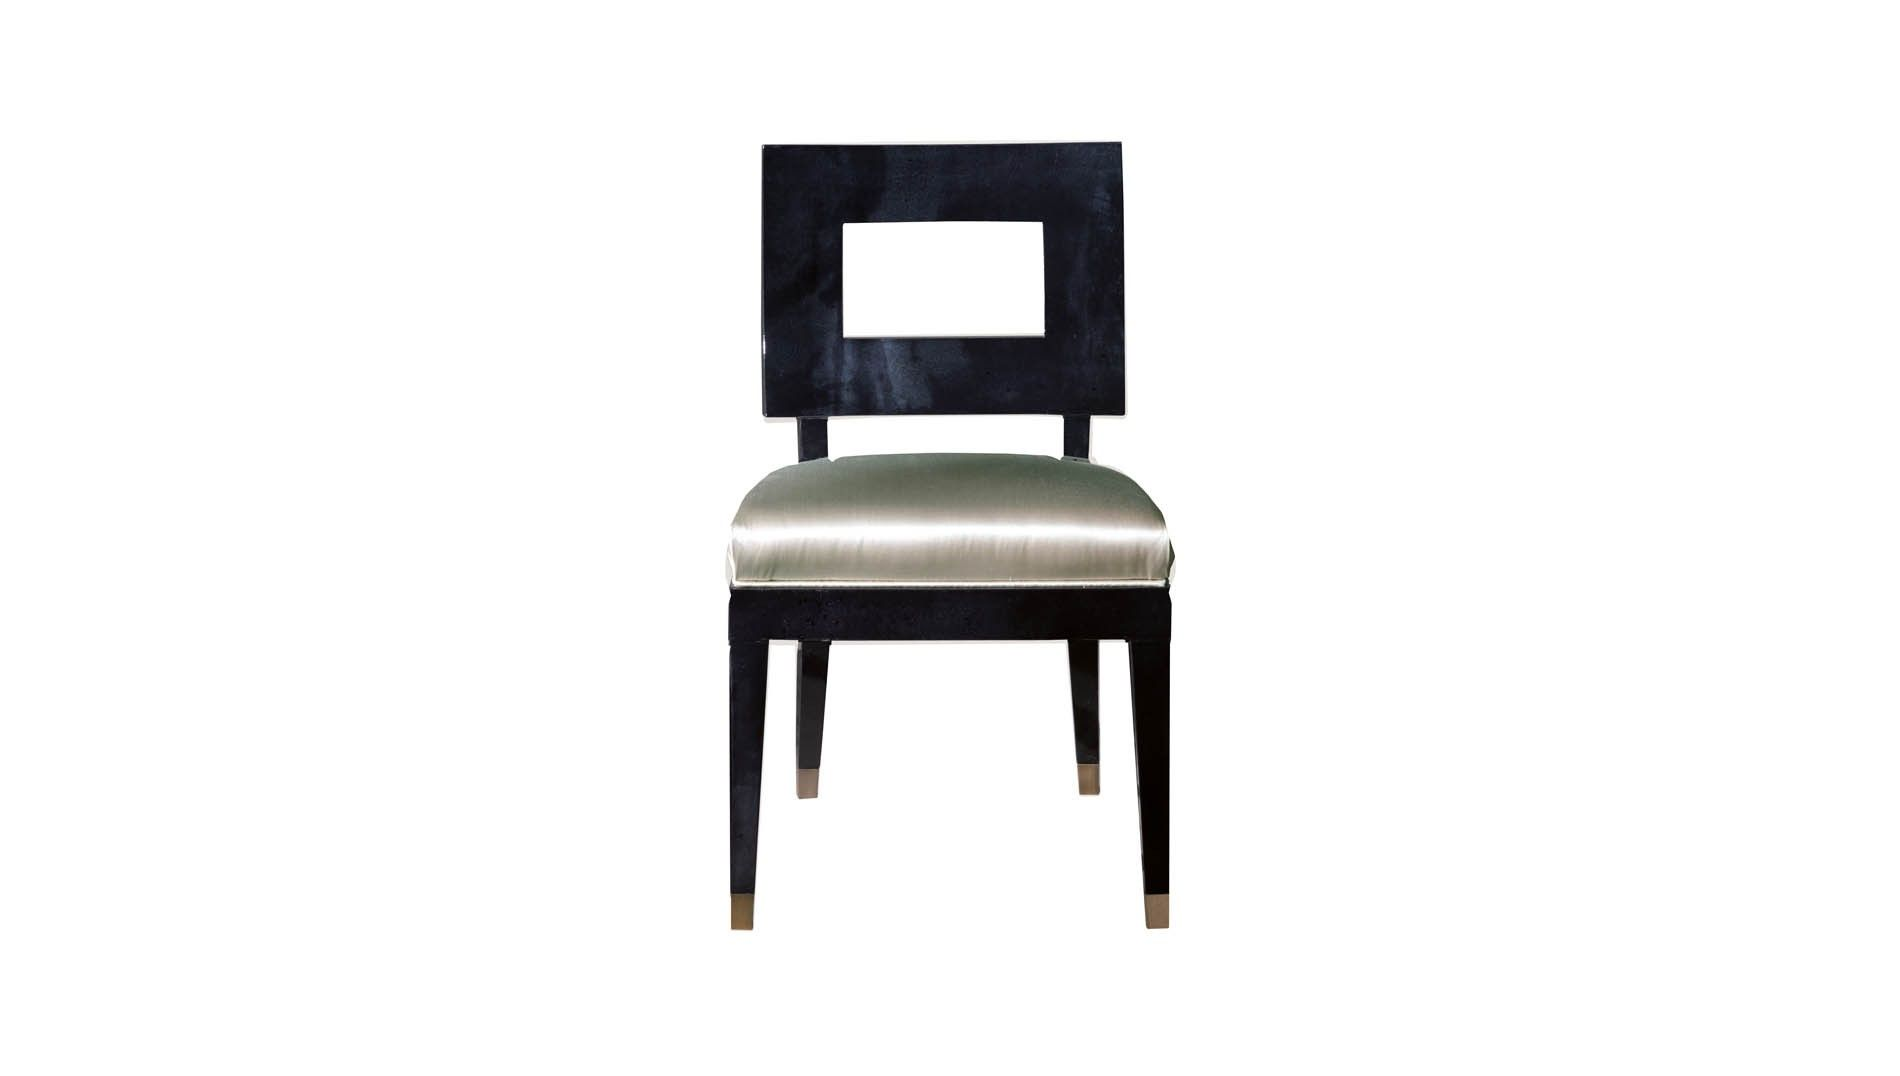 Bronze Dining Chair IV